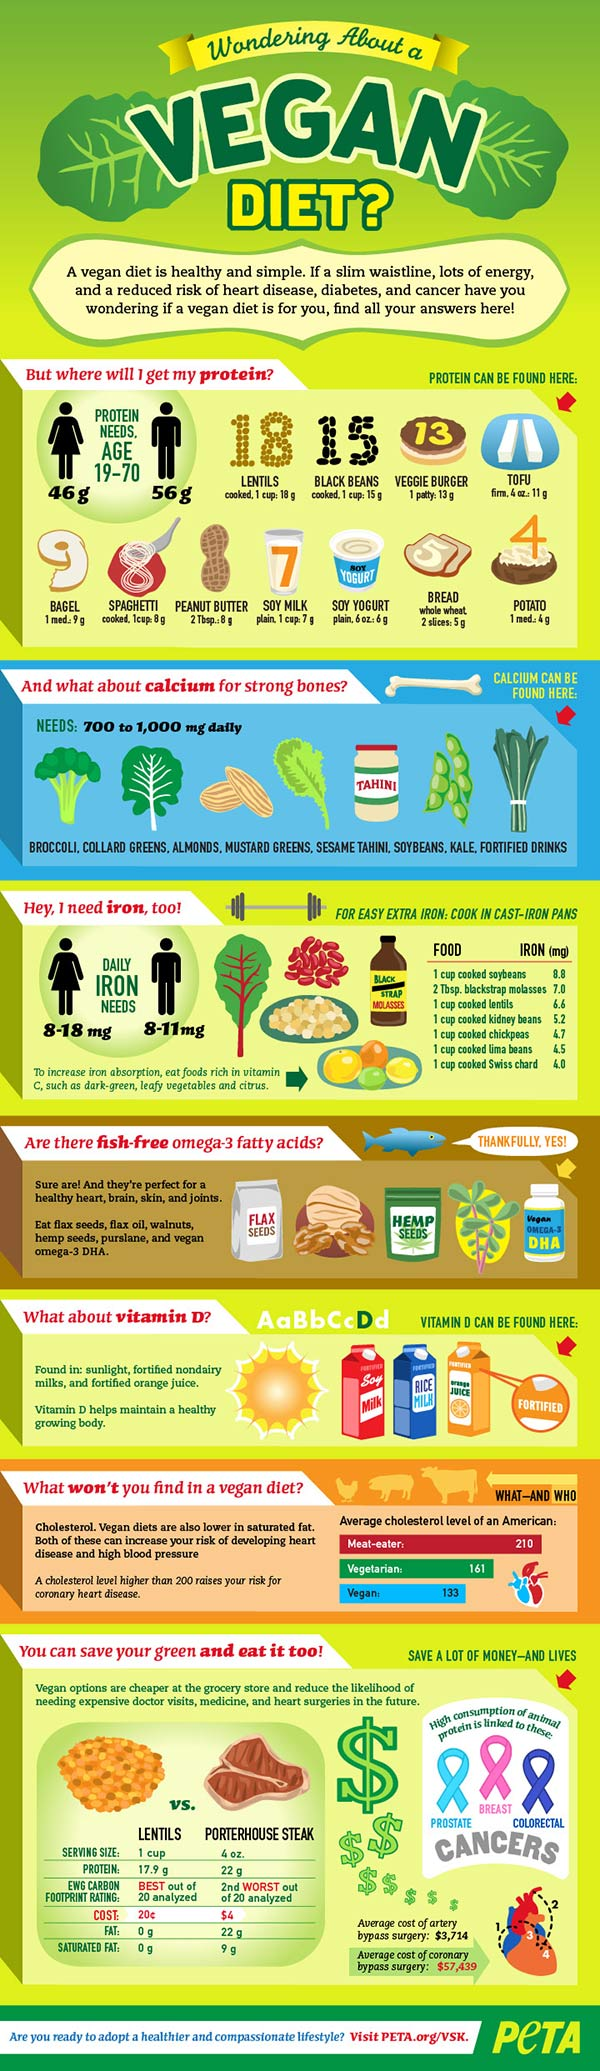 Converting to Vegan diet infographic